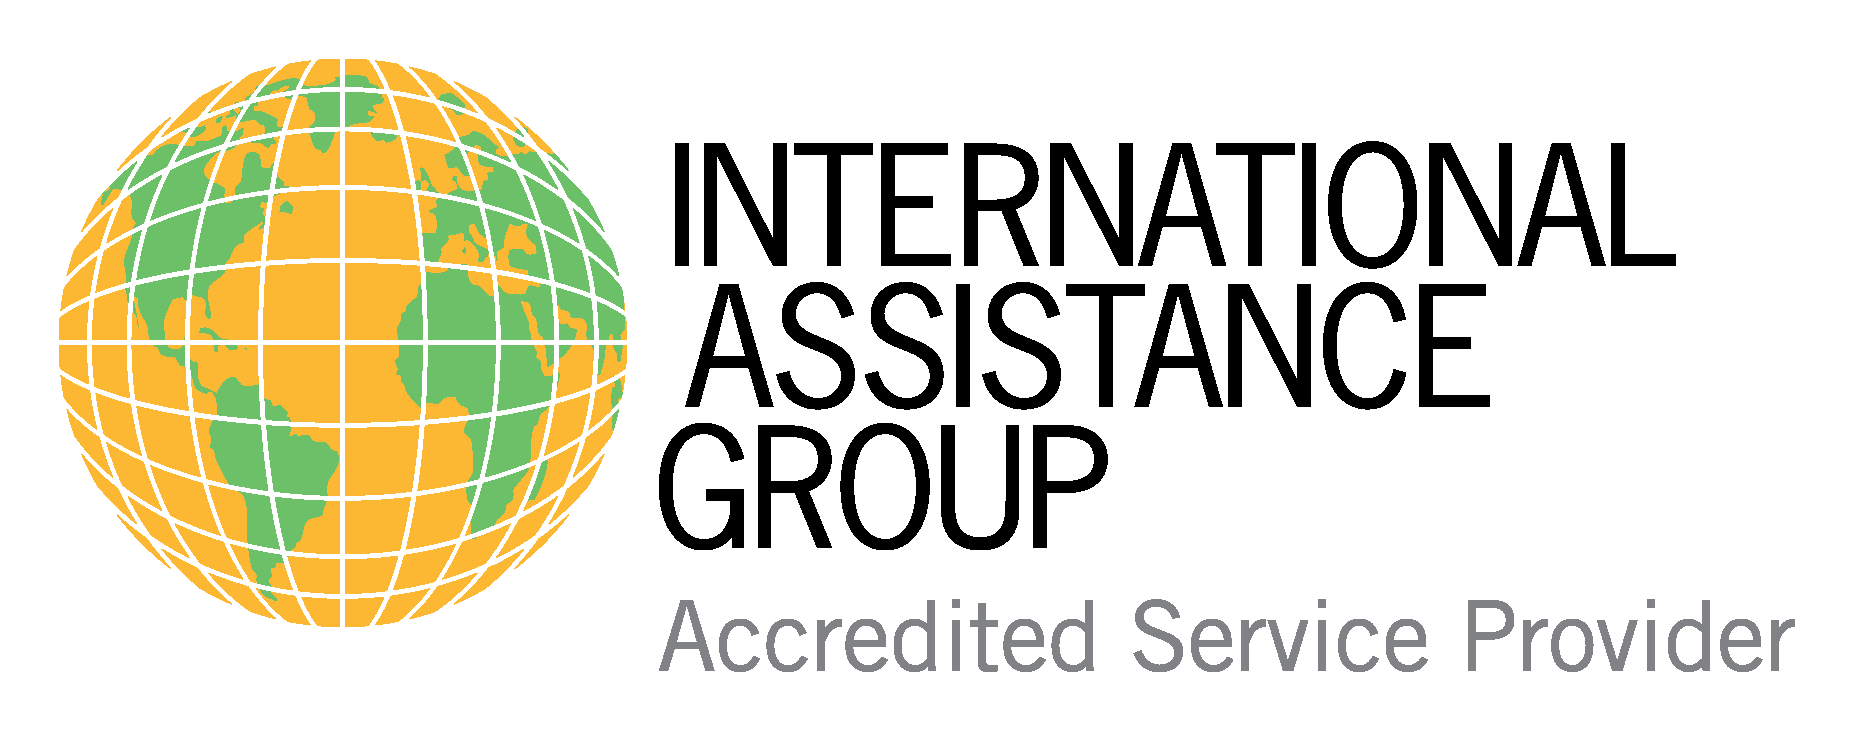 IAG_AccreditedServiceProvider